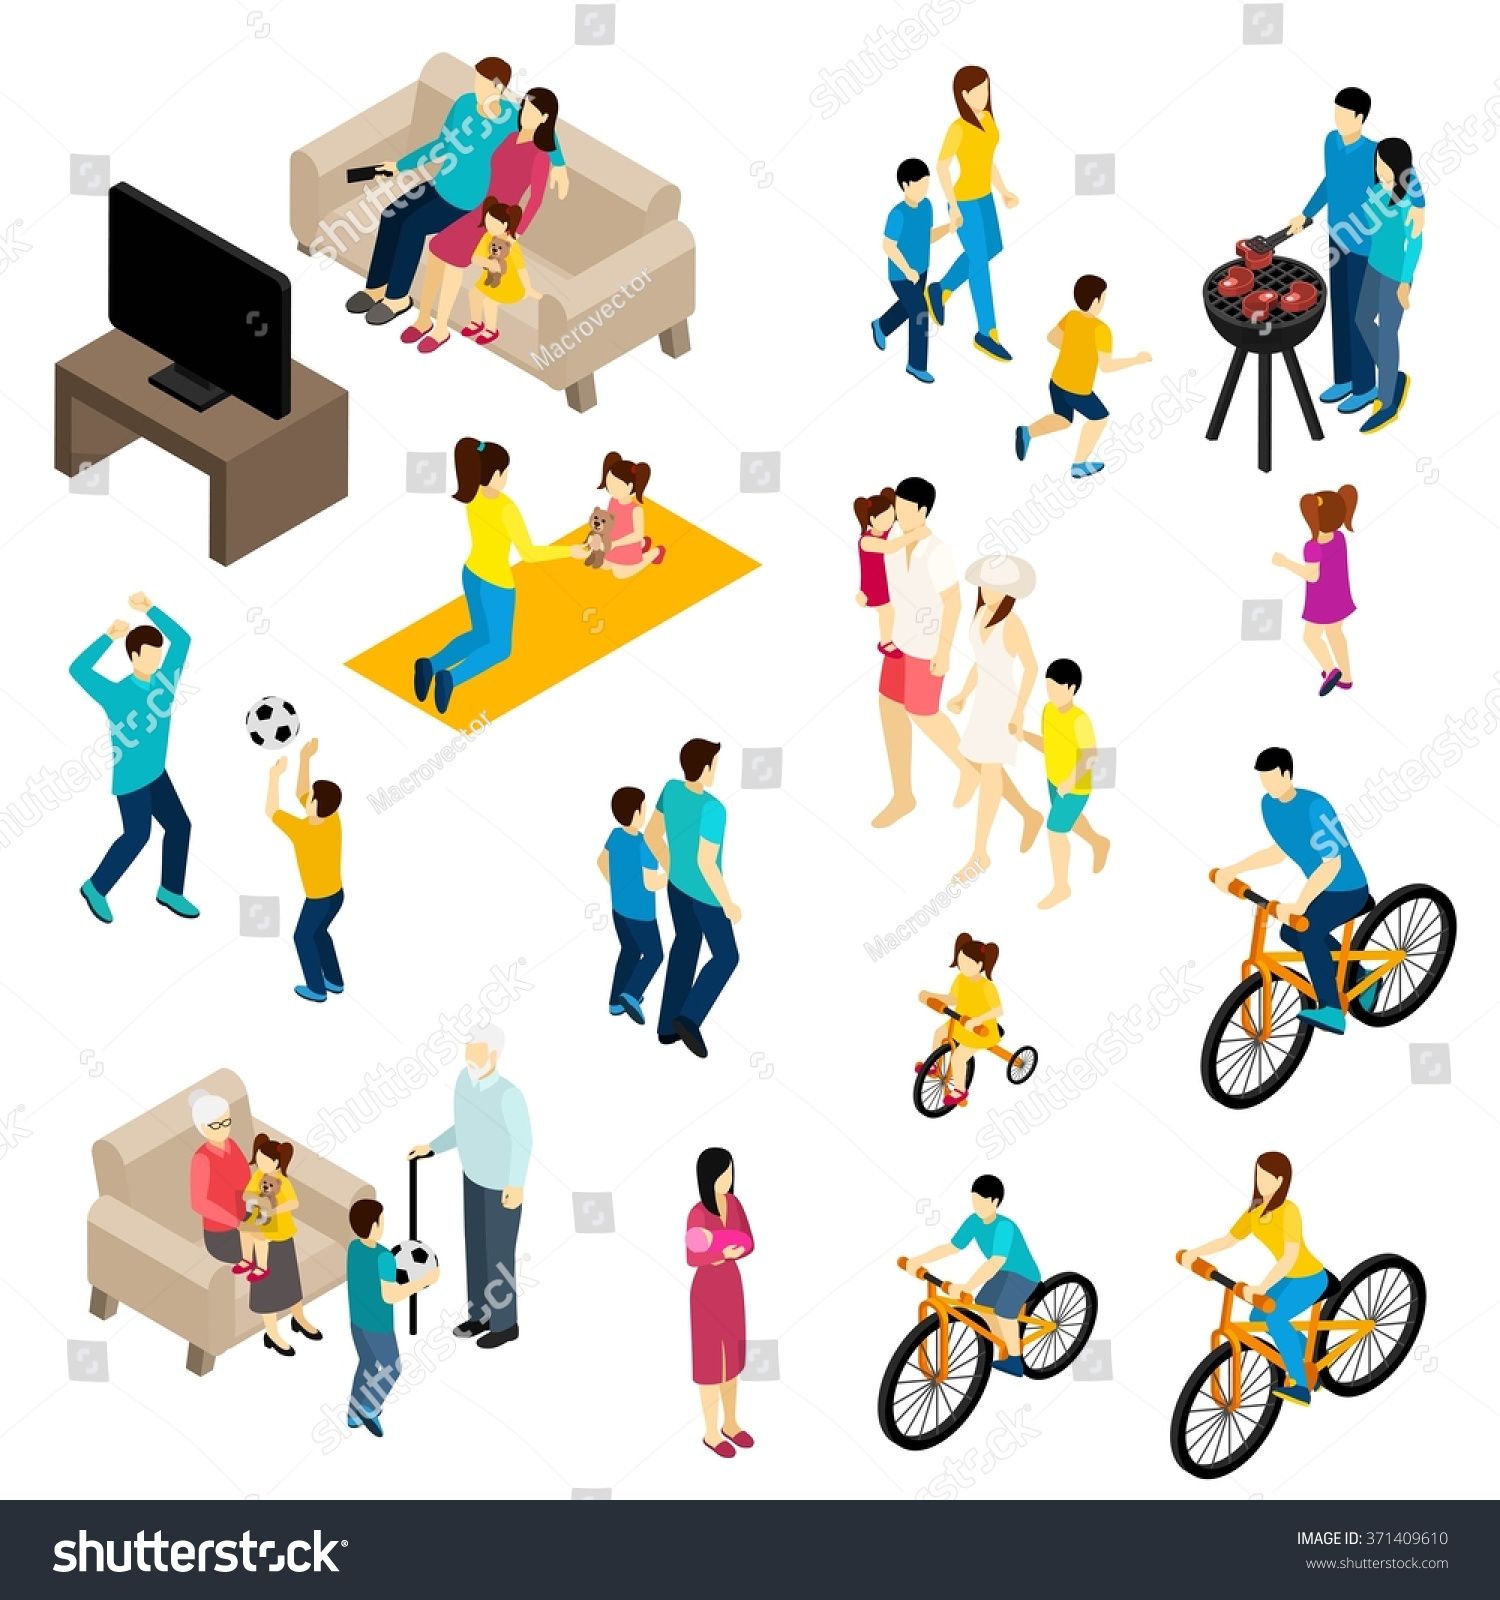 Family Games For Free : Family isometric set free time activities stock vector